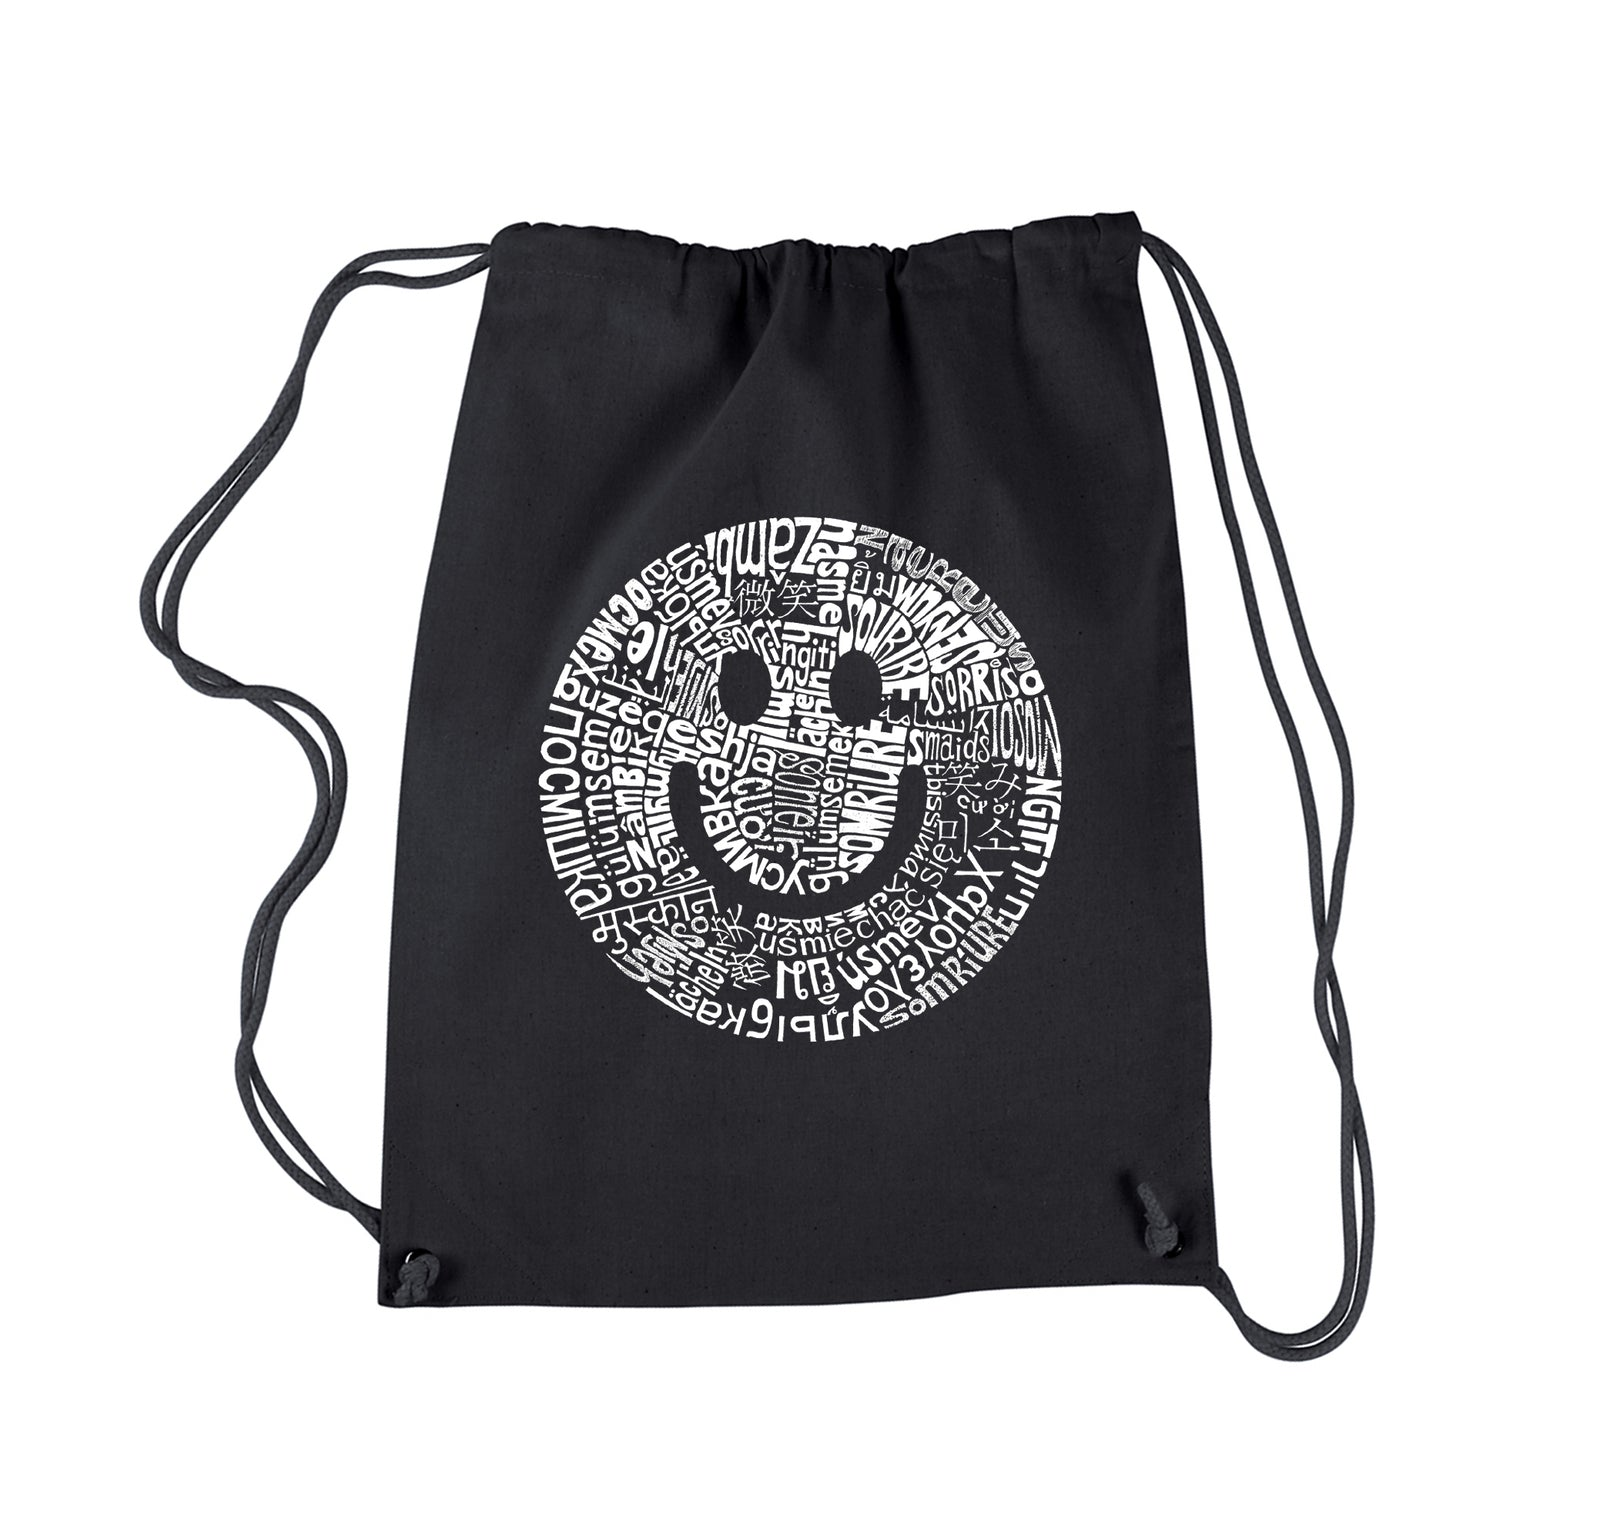 Drawstring Backpack - SMILE IN DIFFERENT LANGUAGES